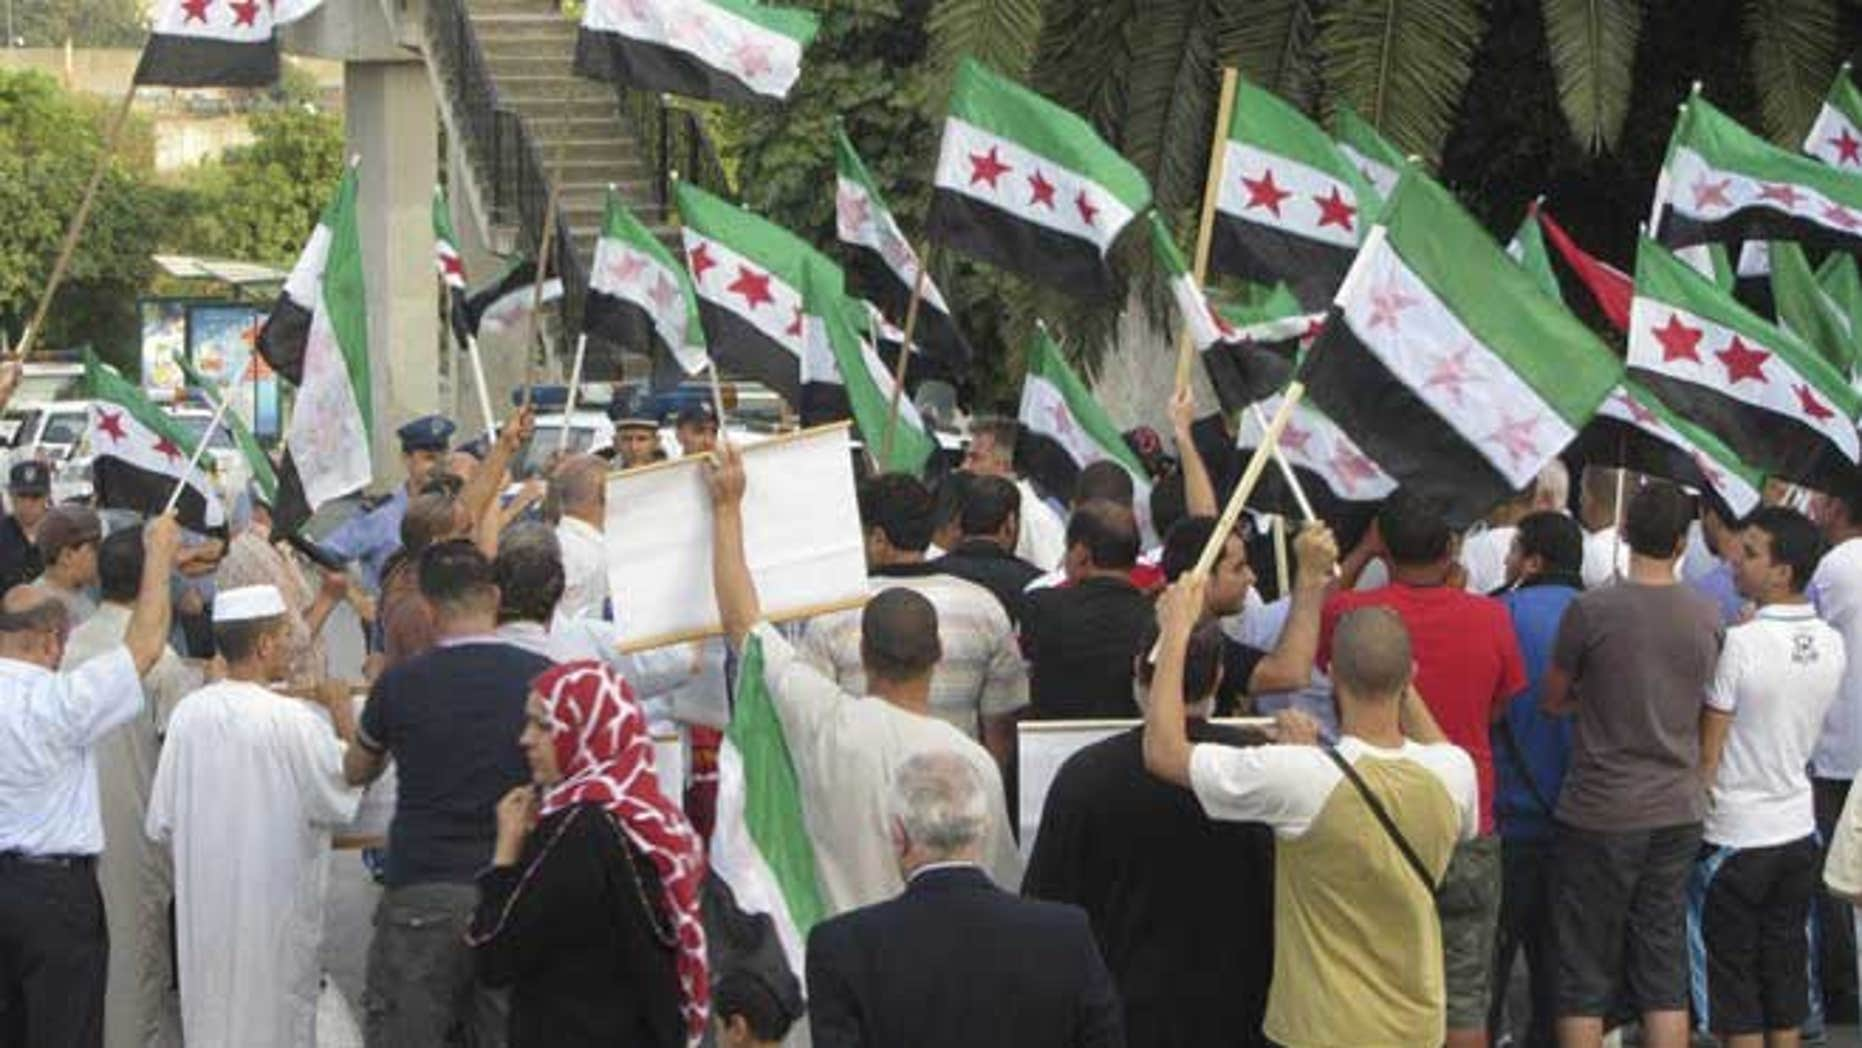 July 3, 2012: This citizen journalist image provided by Shaam News Network purports to show a protest against violence by the Syrian government, in a suburb of Damascus, Syria.